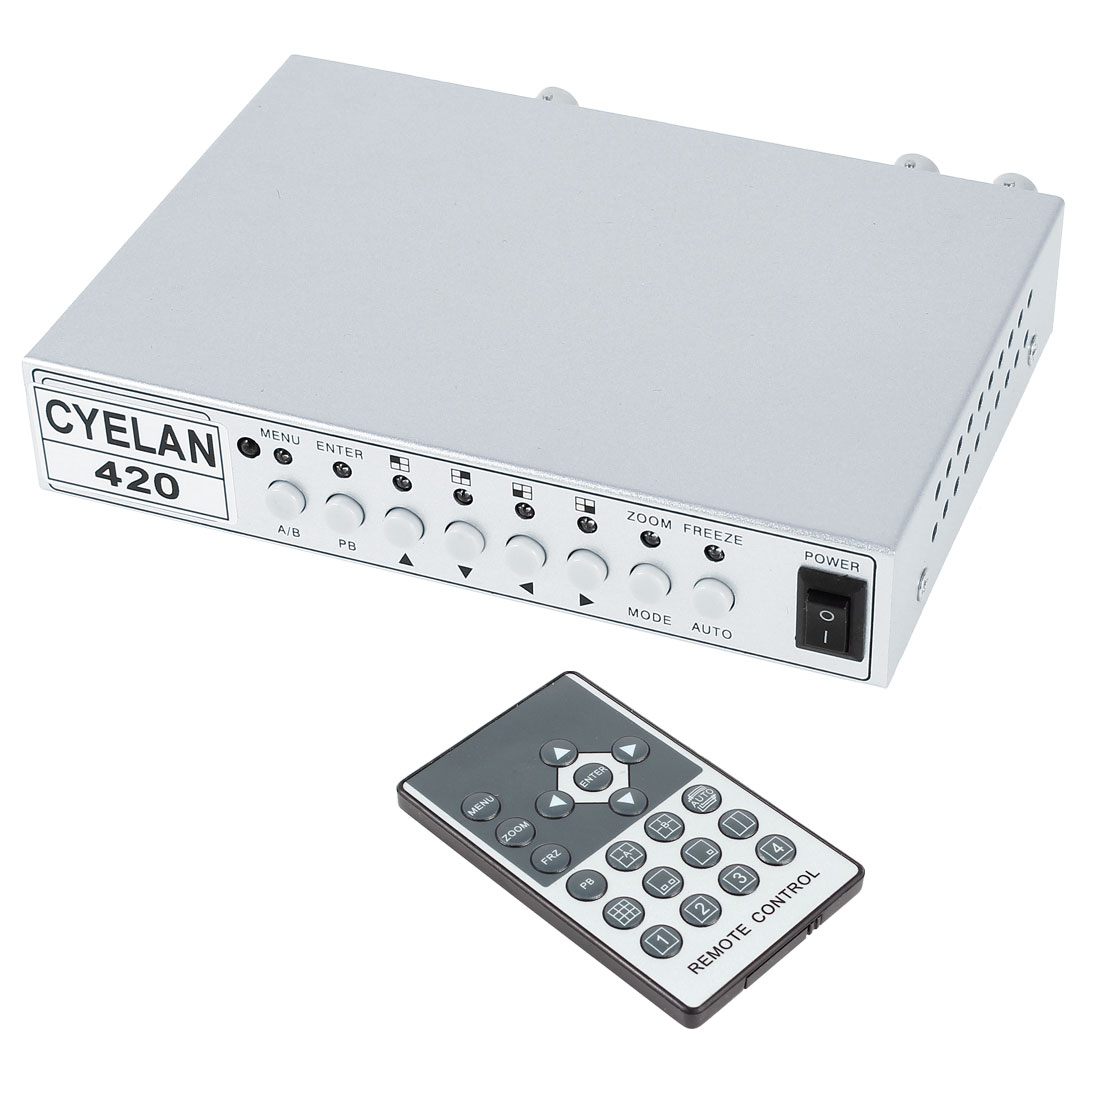 2Ch CCTV Color QUAD Processor Spliter for Surveillance Security Camera System